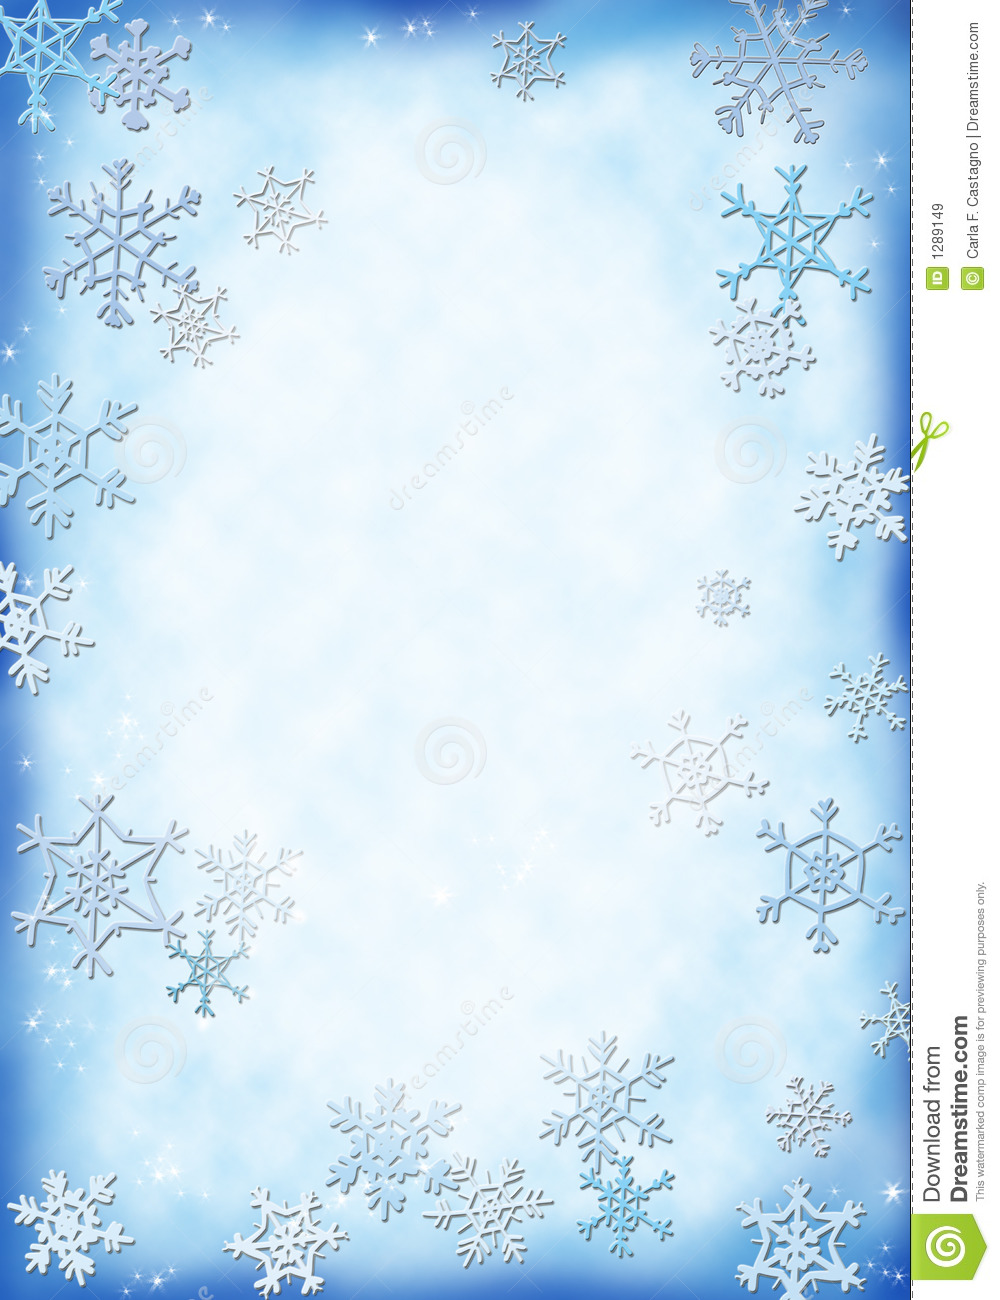 christmas letter backgrounds for free - acur.lunamedia.co